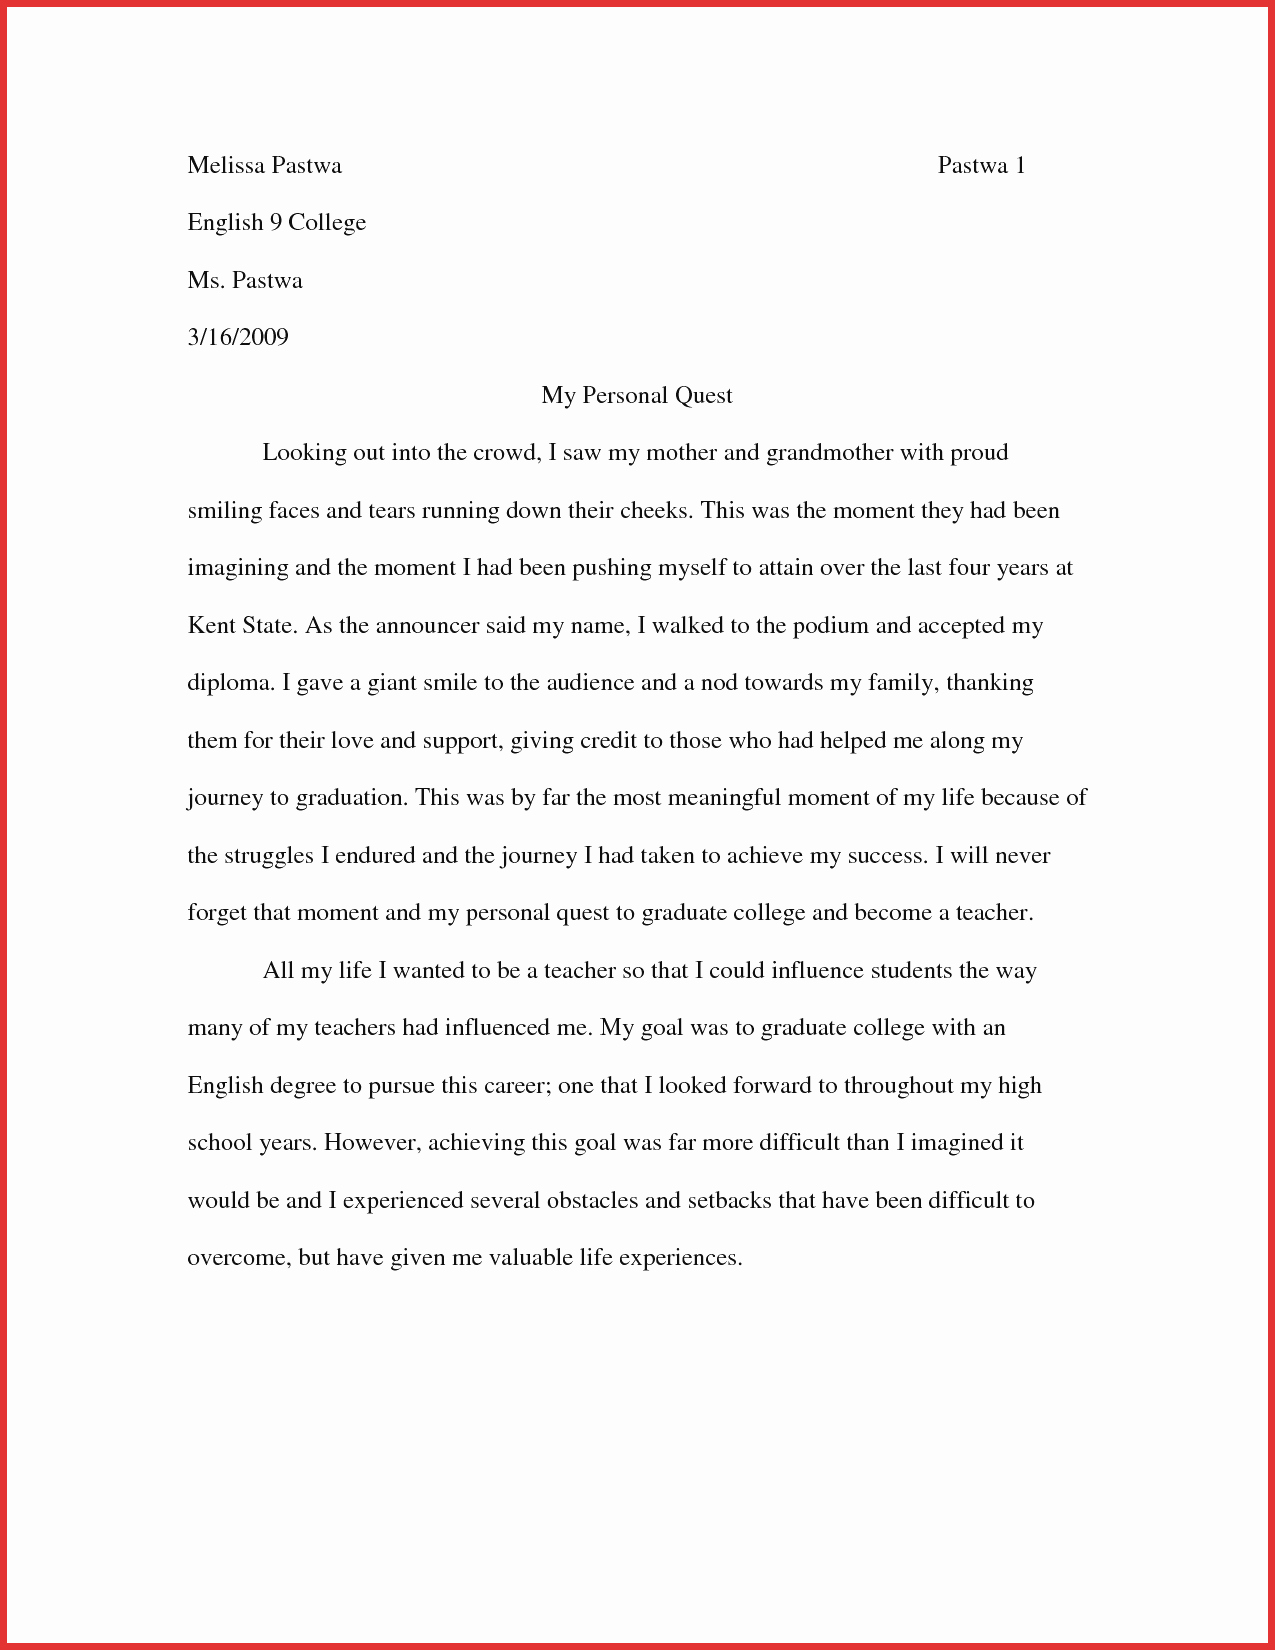 007 Essay Example Higher English Imaginative Ideas Narrative Personal Examples Best College Creative O Side Response Writing Nonfiction Pdf Phenomenal Advanced Full